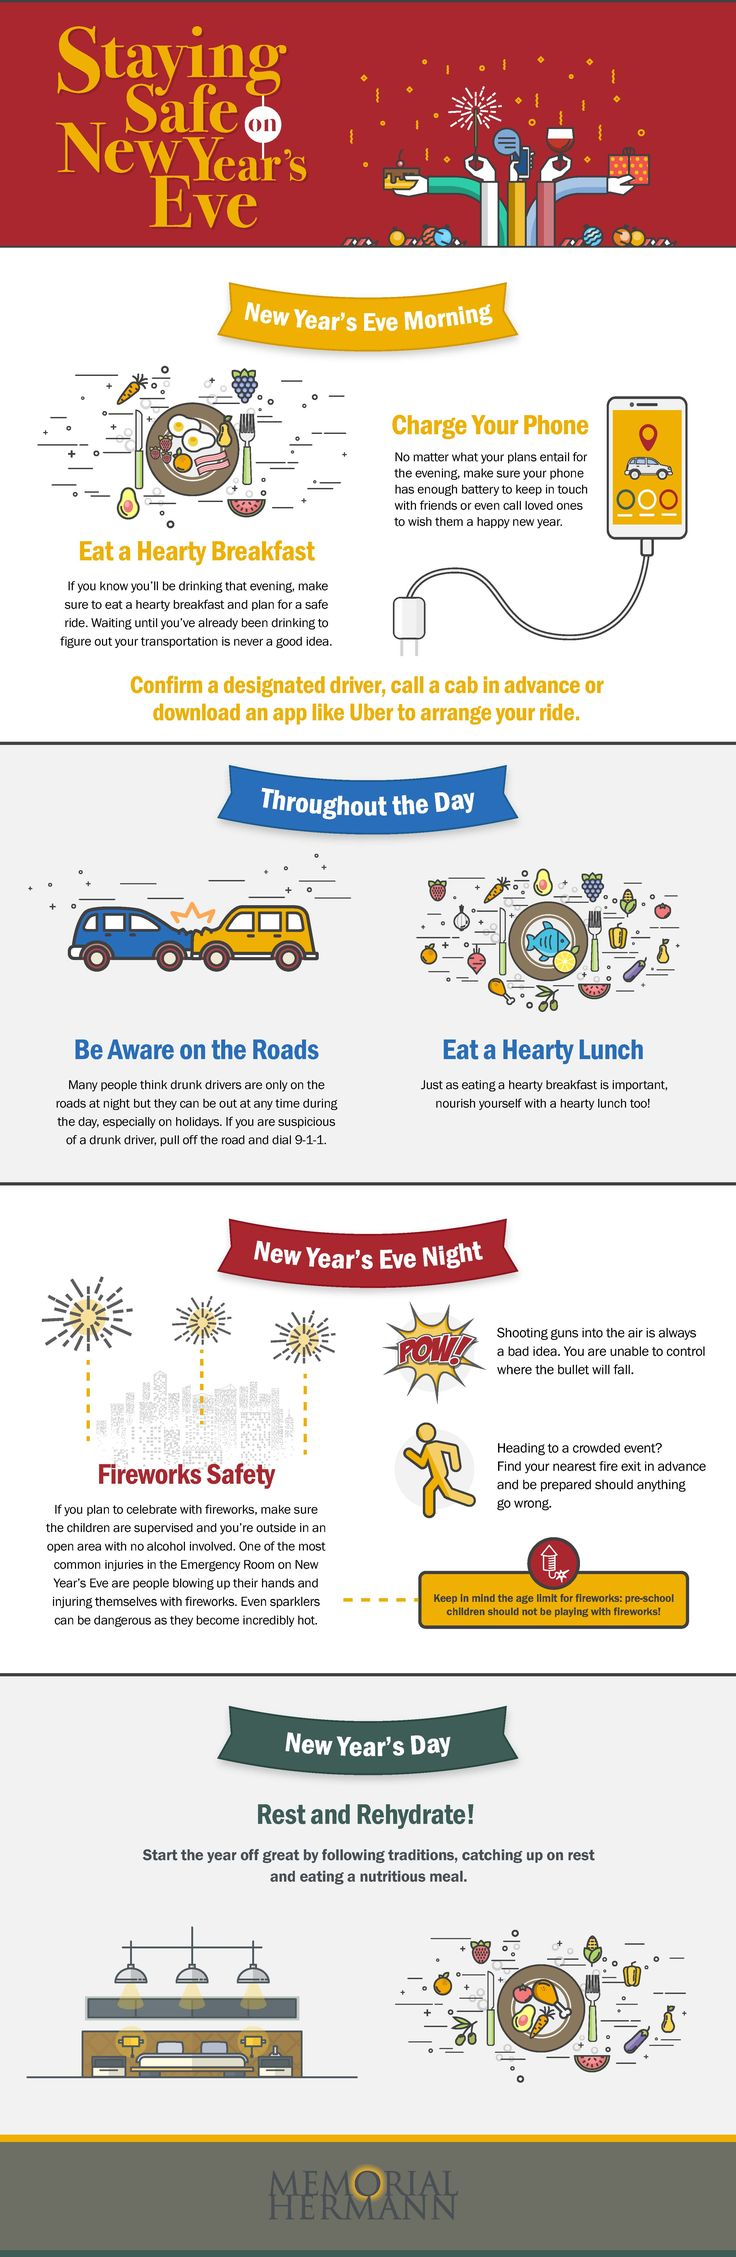 9 best images about Holiday Safety Tips on Pinterest ...